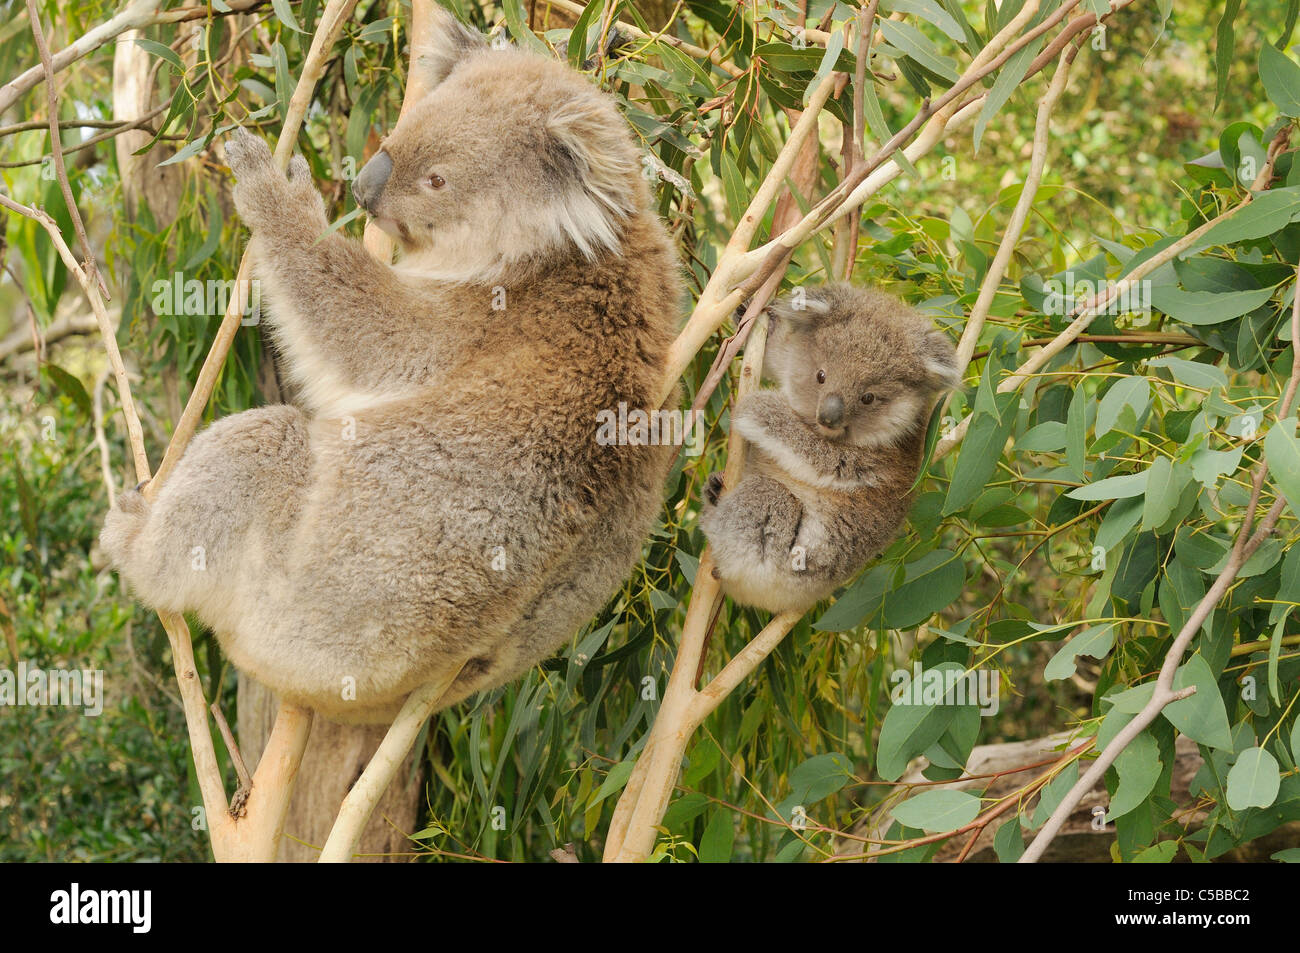 Koala Phascolarctos cinereus Mother and joey Photographed in Victoria, Australia - Stock Image